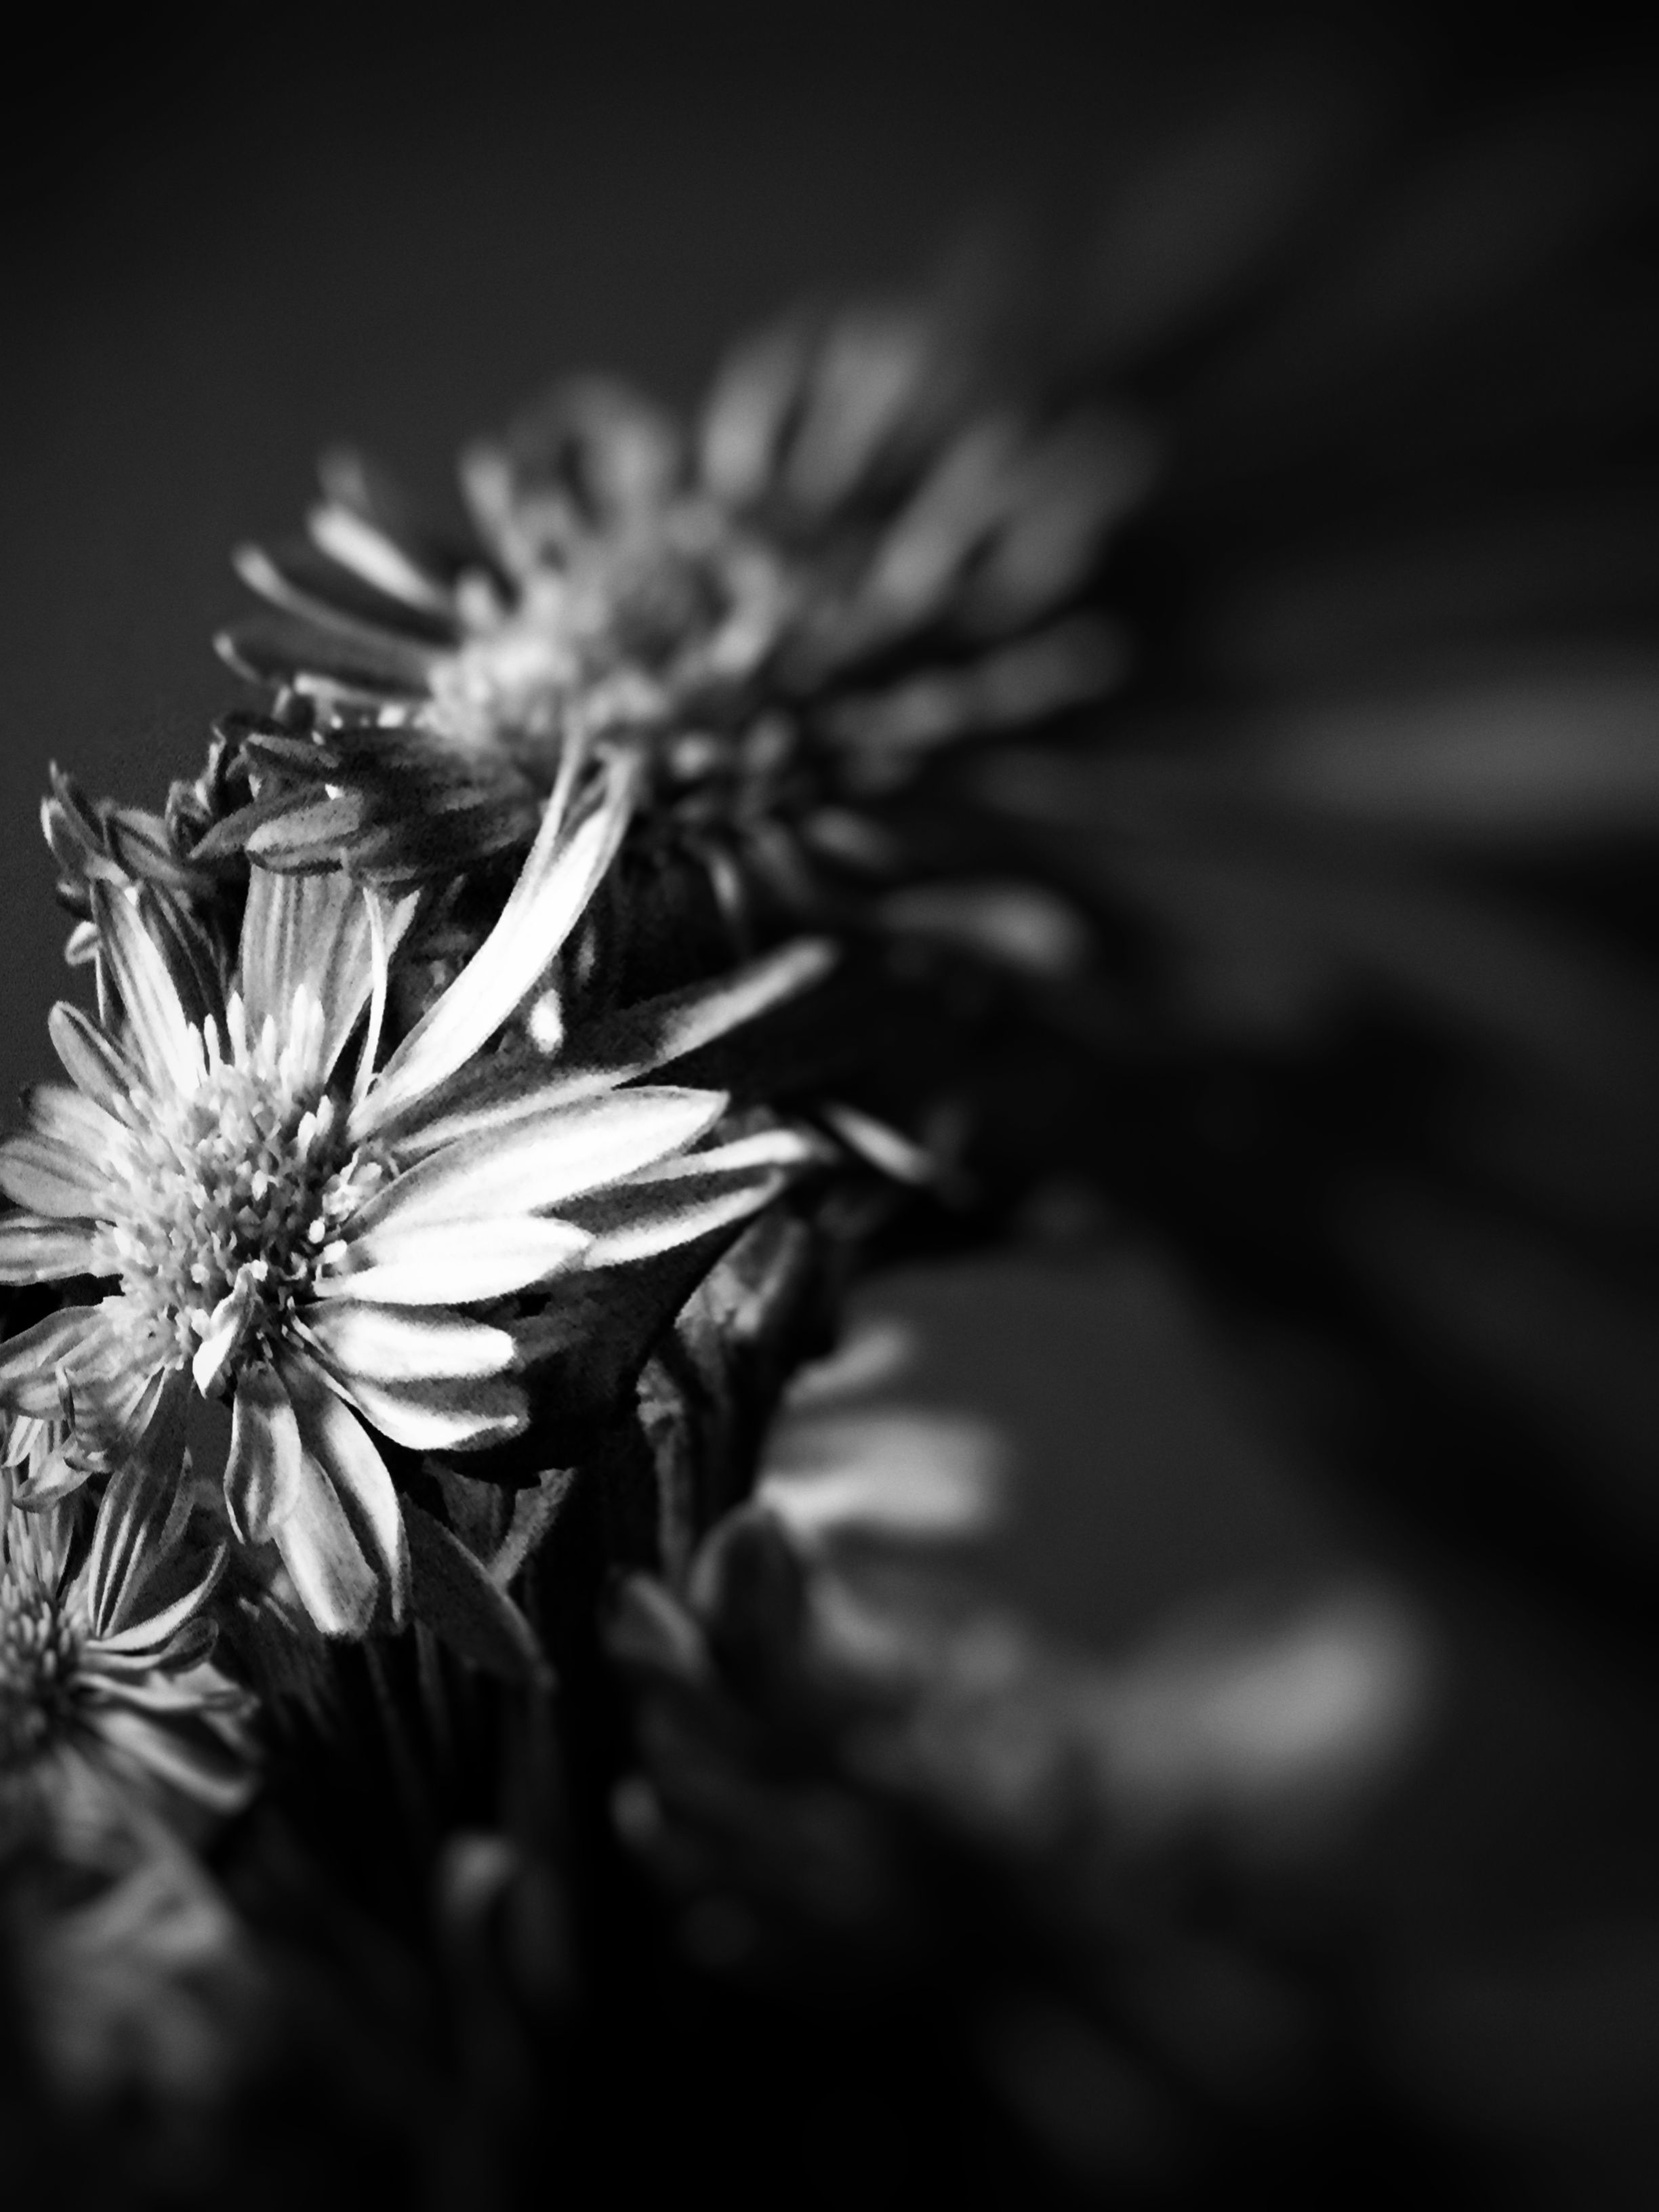 Moody black and white photograph of flowers photography black